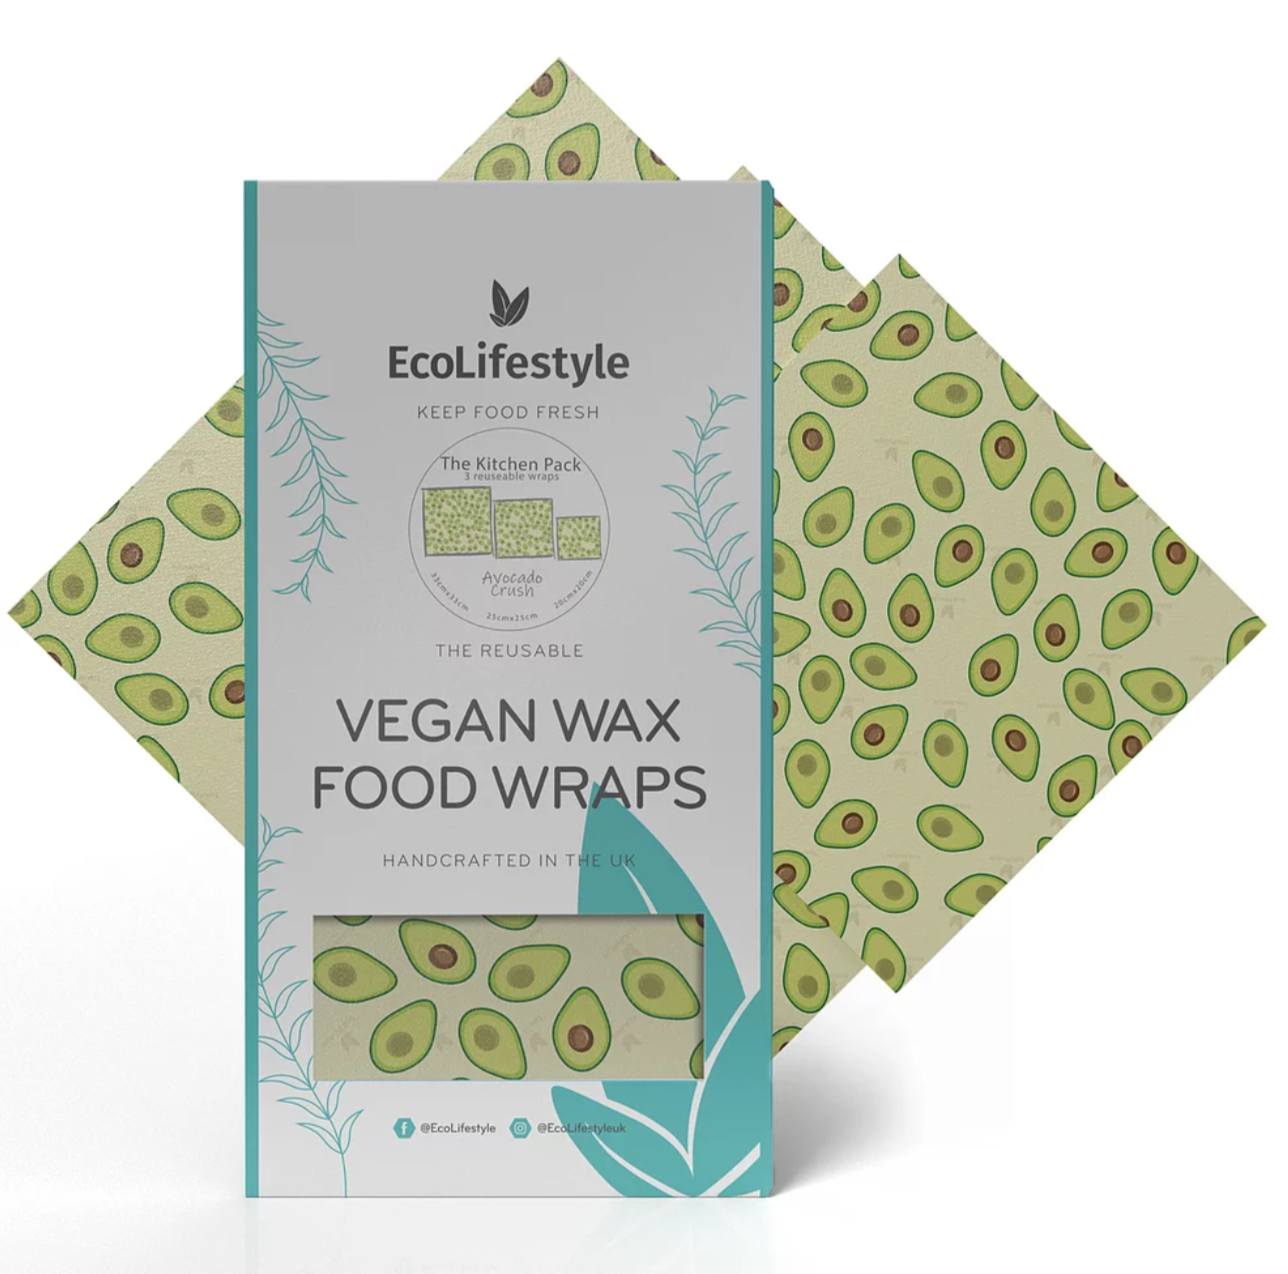 Vegan Wax Food Wraps Kitchen Pack- EcoLifestyle